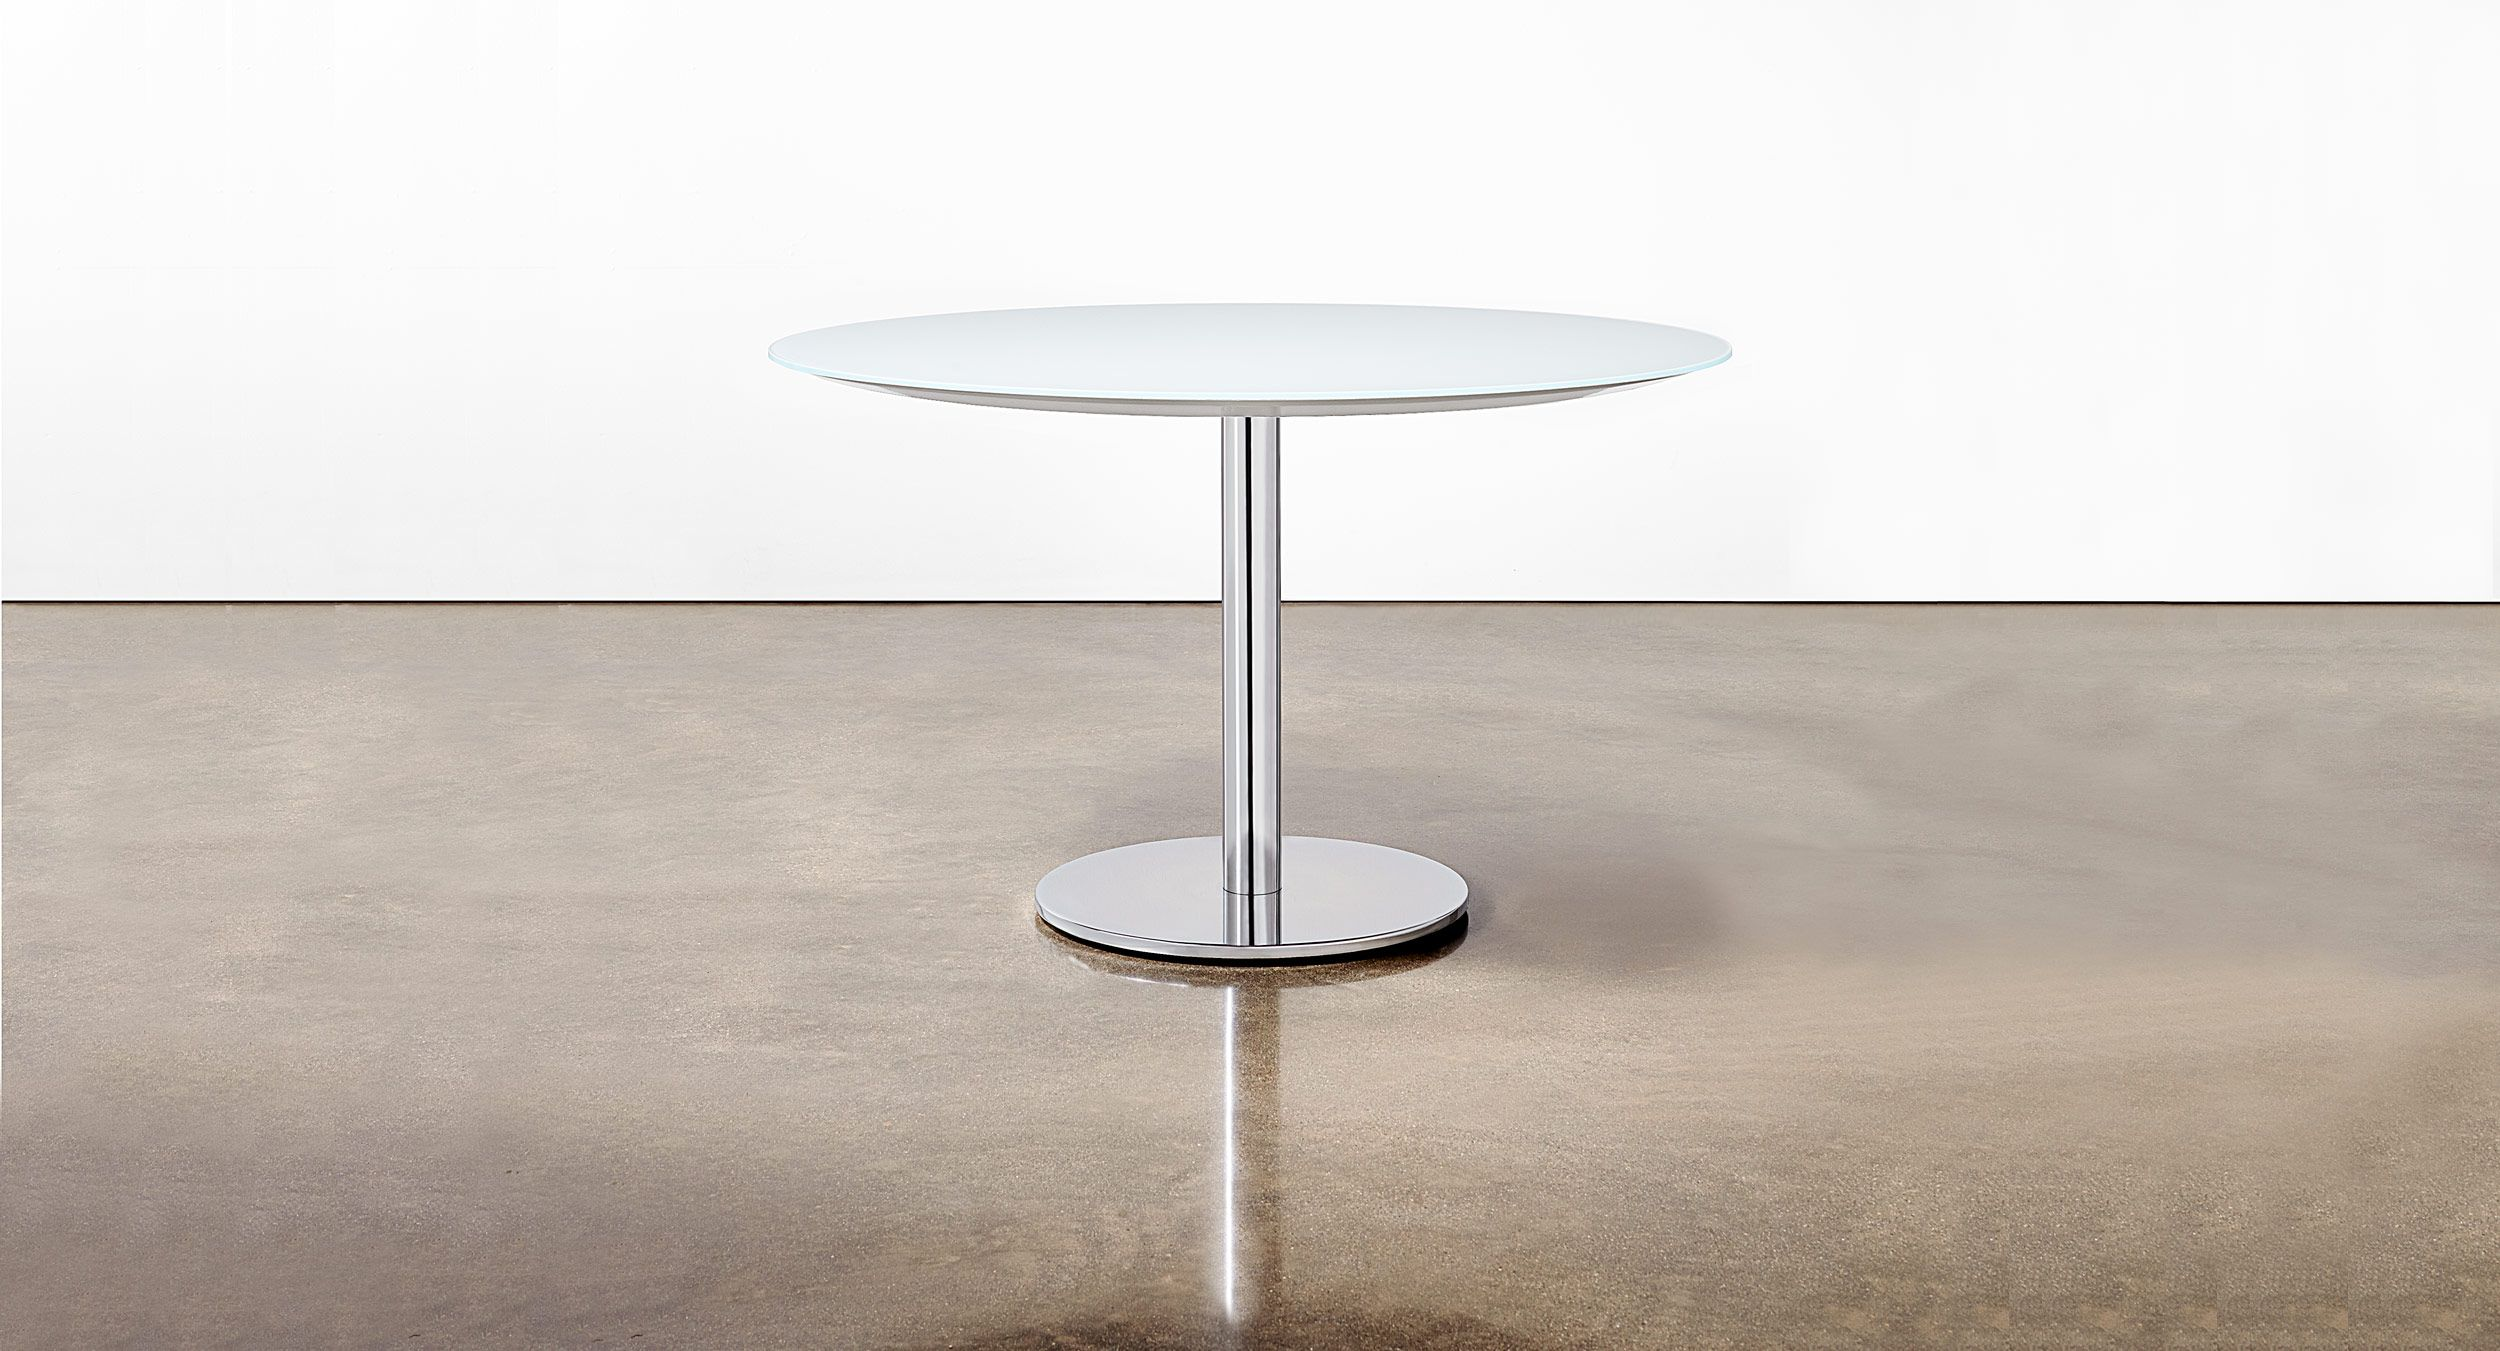 Glass table with Disc base